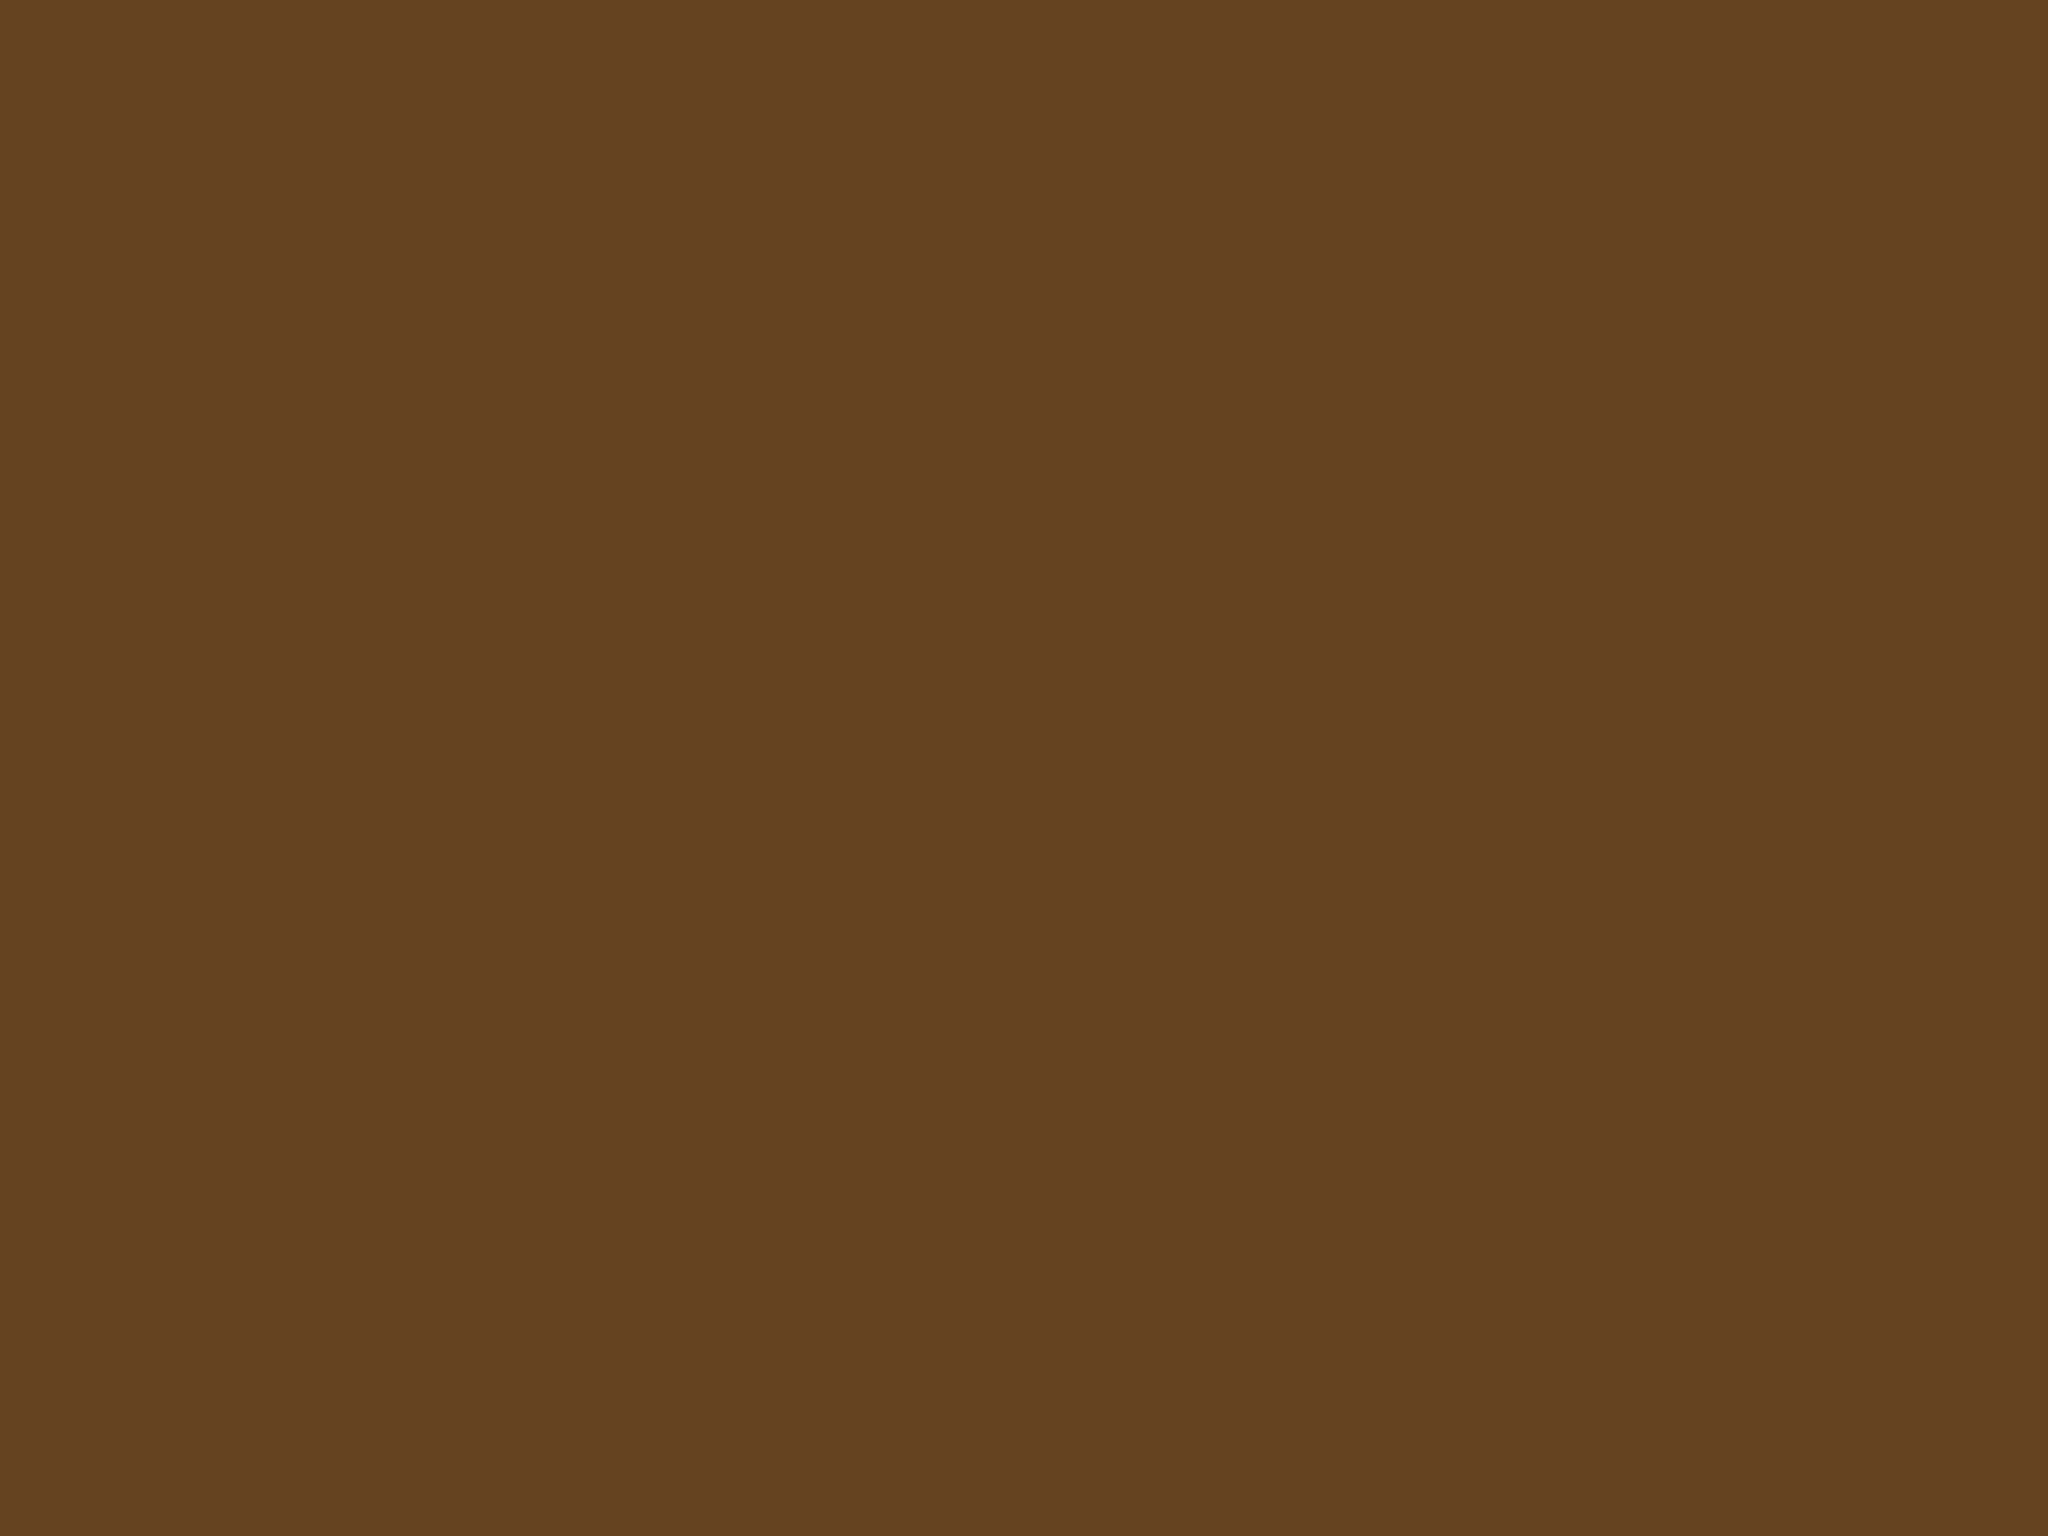 2048x1536 Otter Brown Solid Color Background